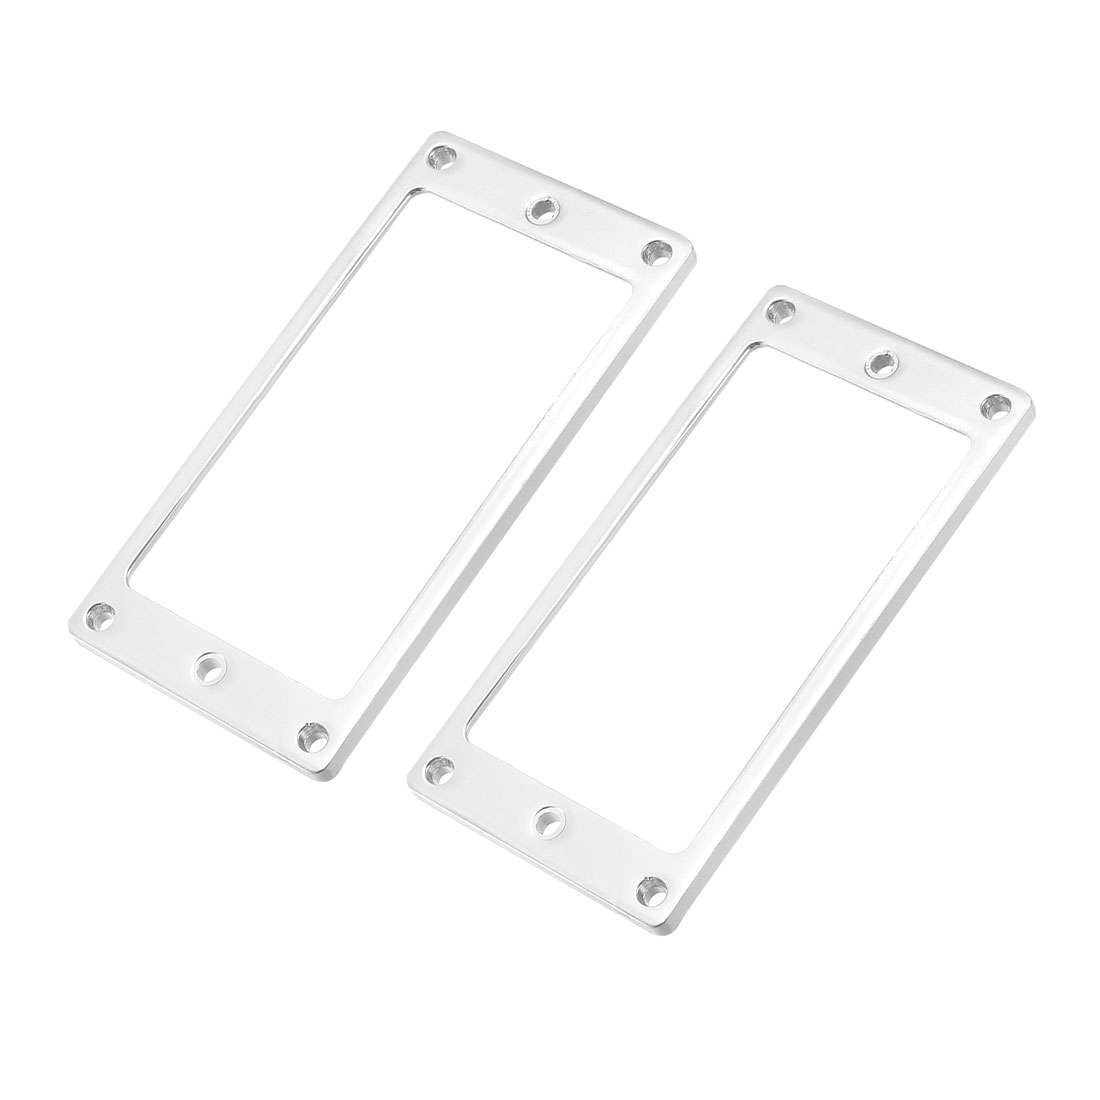 Humbucker Pickup Frame Mounting Rings Parts for Electric Guitars Silver 2Pcs